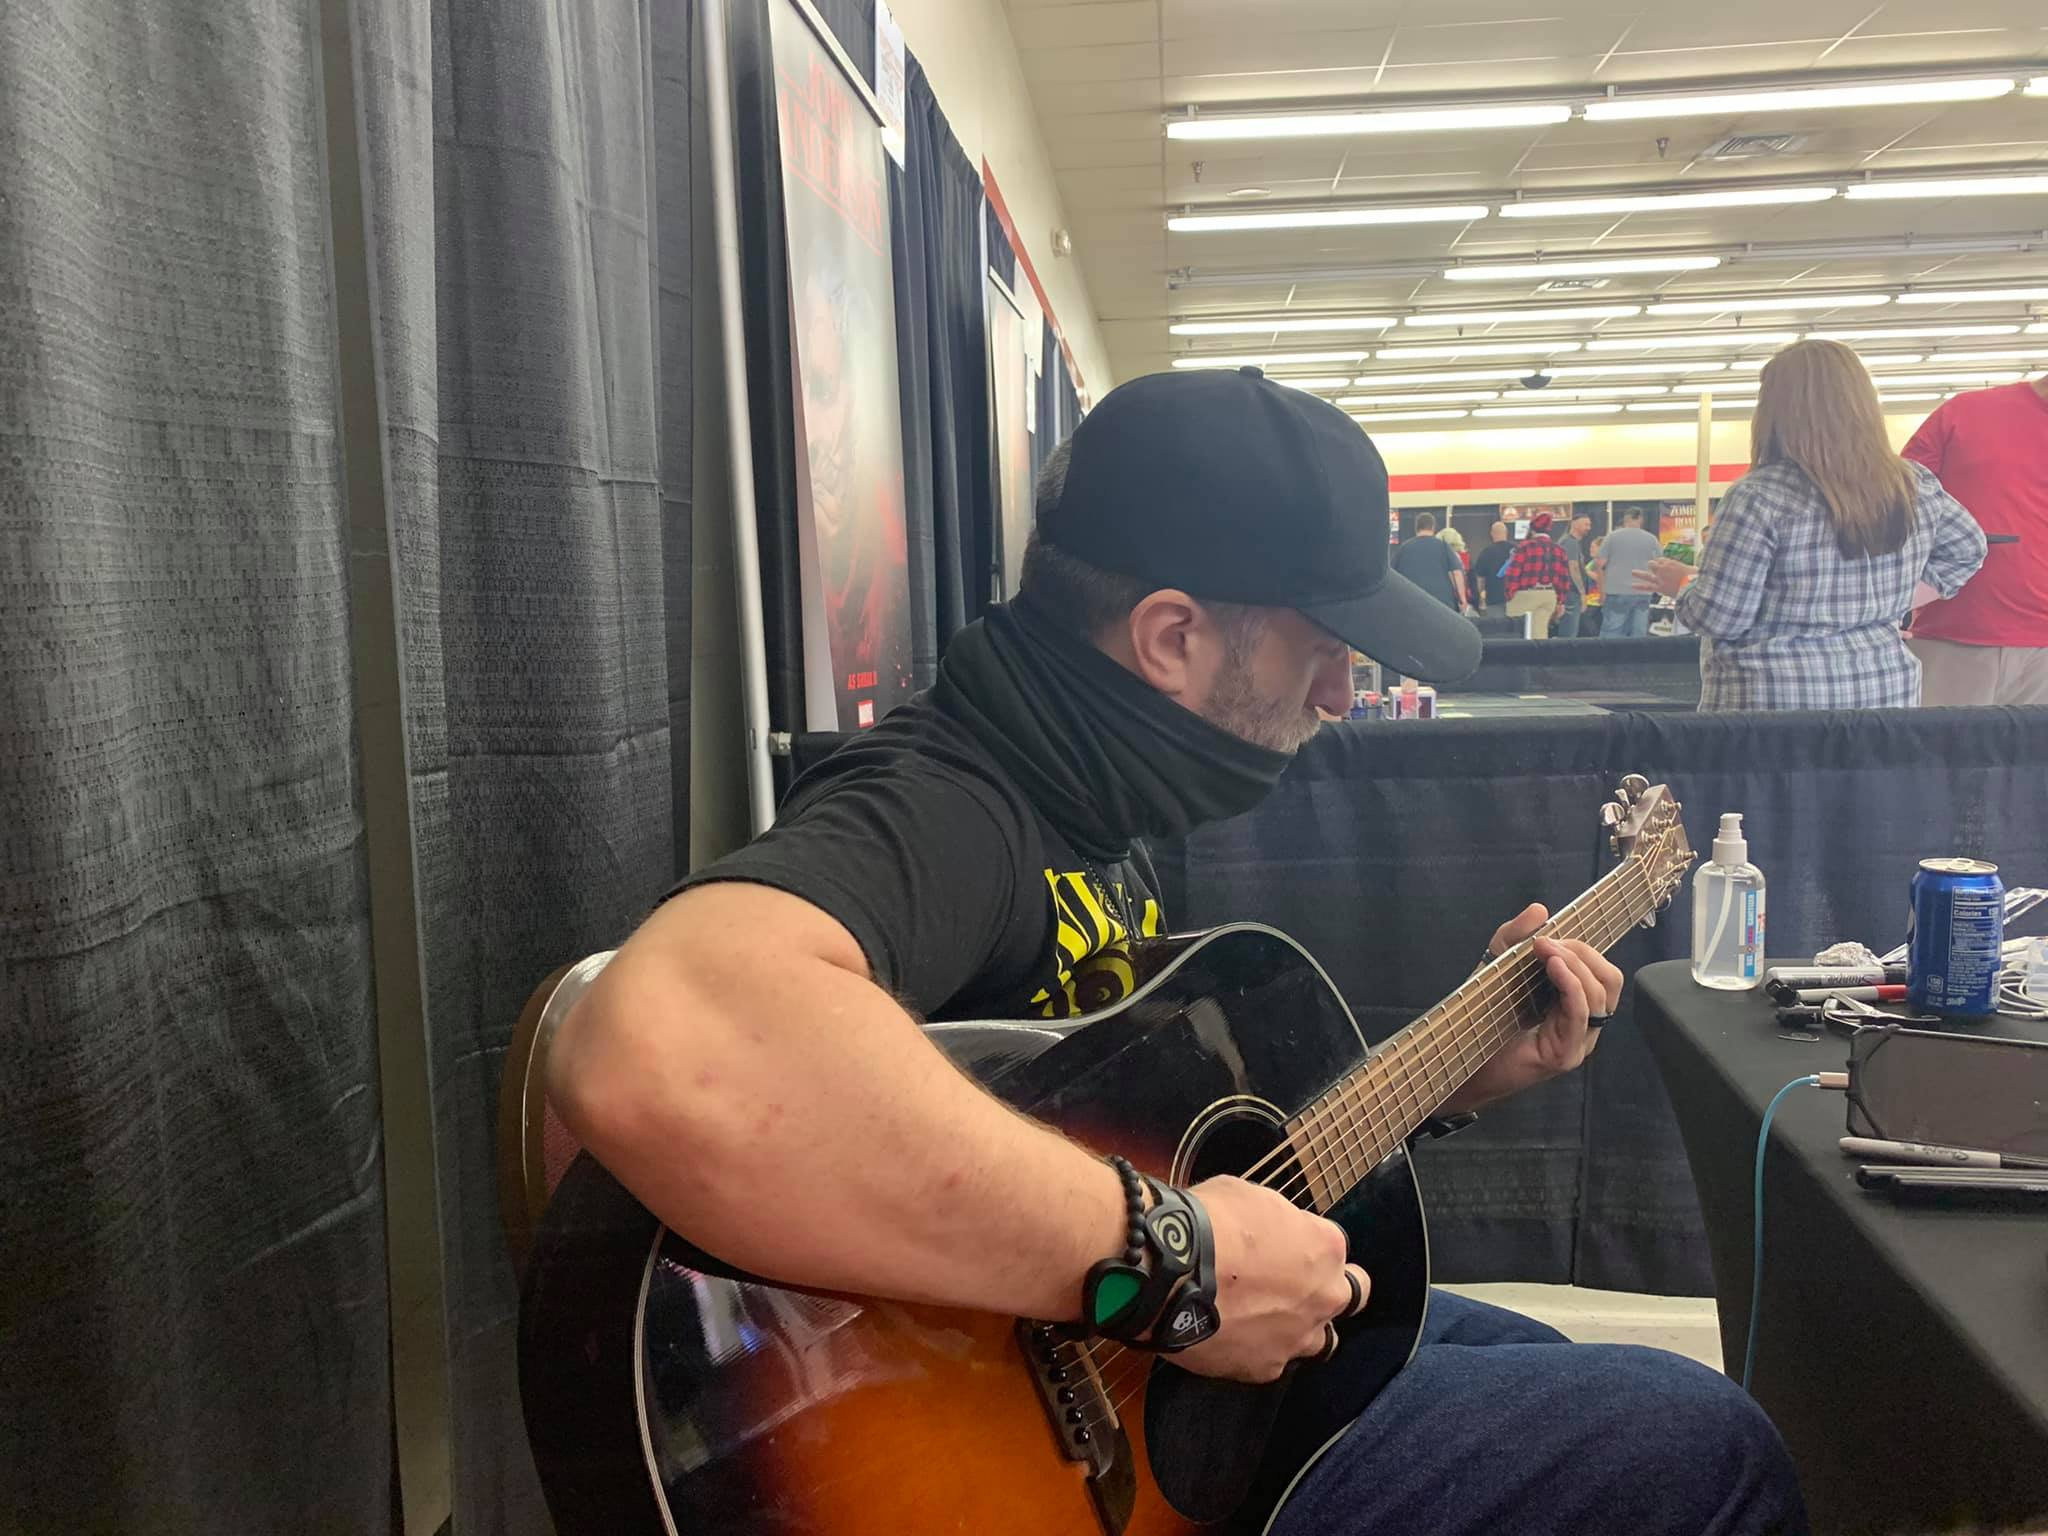 Dustin Diamond having a quiet moment to himself, playing his guitar. October, 2020. | Photo: Facebook/dustindiamond.